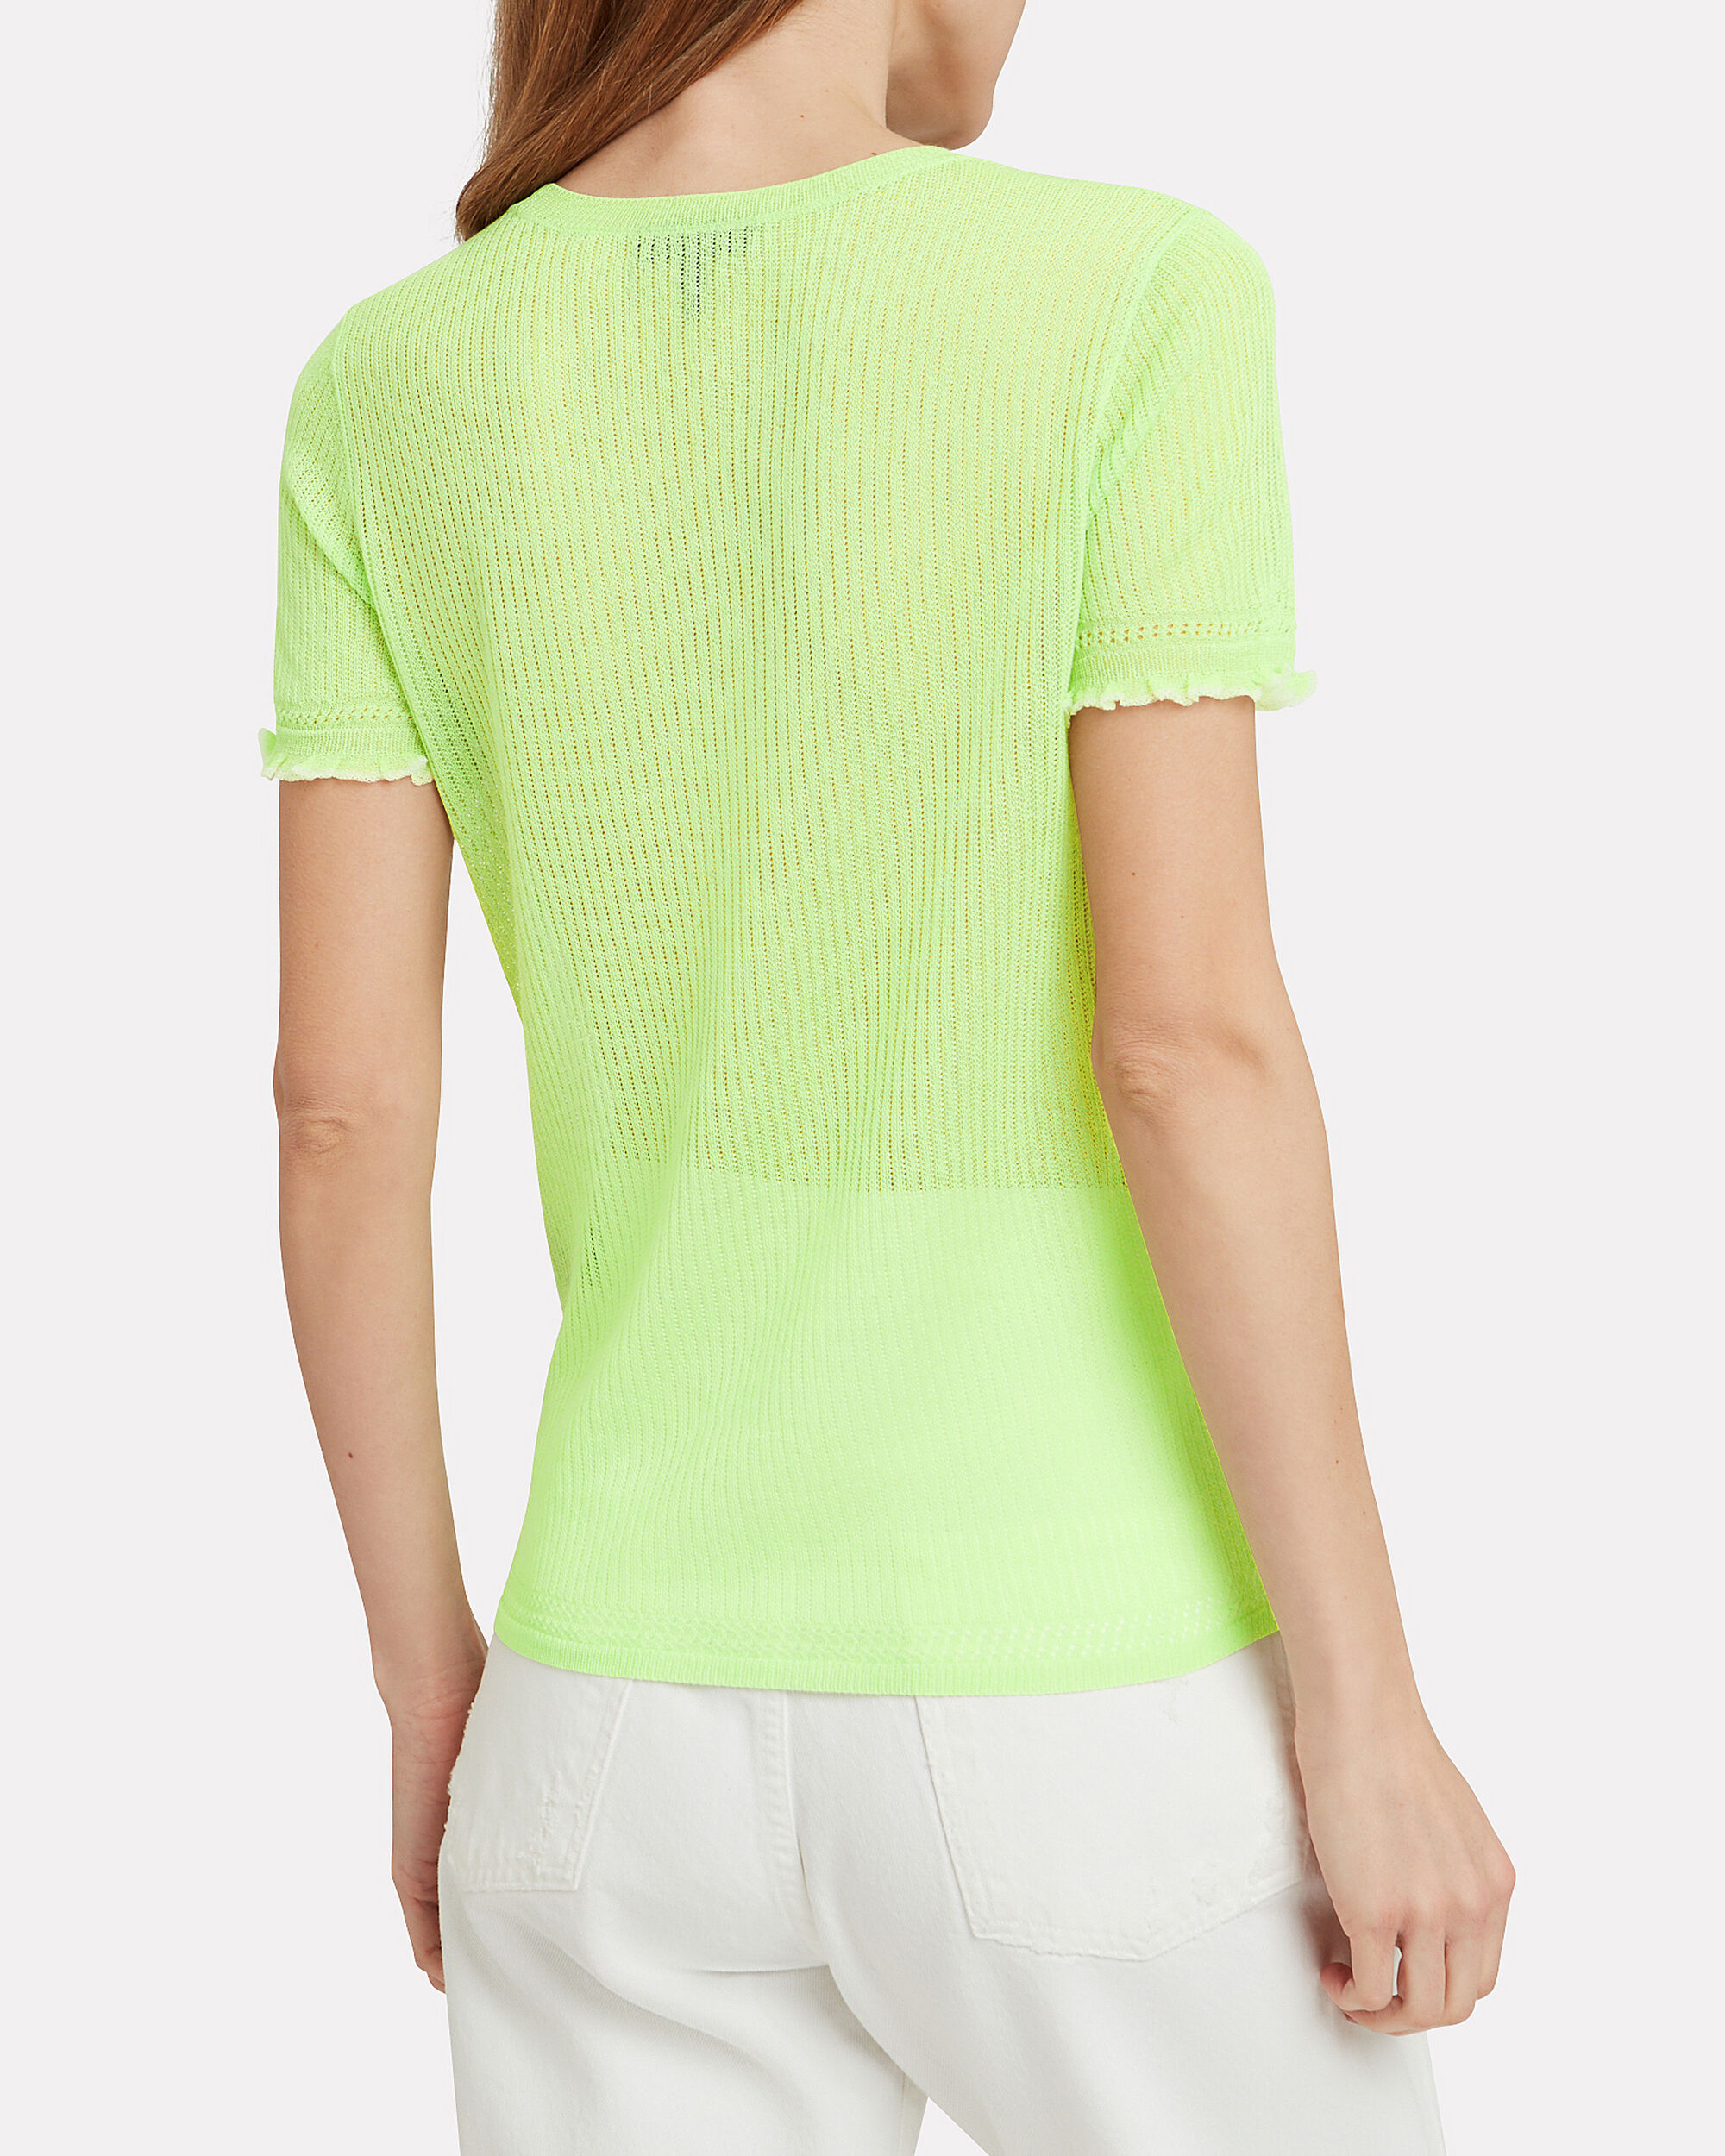 Breanne Knit T-Shirt, NEON GREEN, hi-res